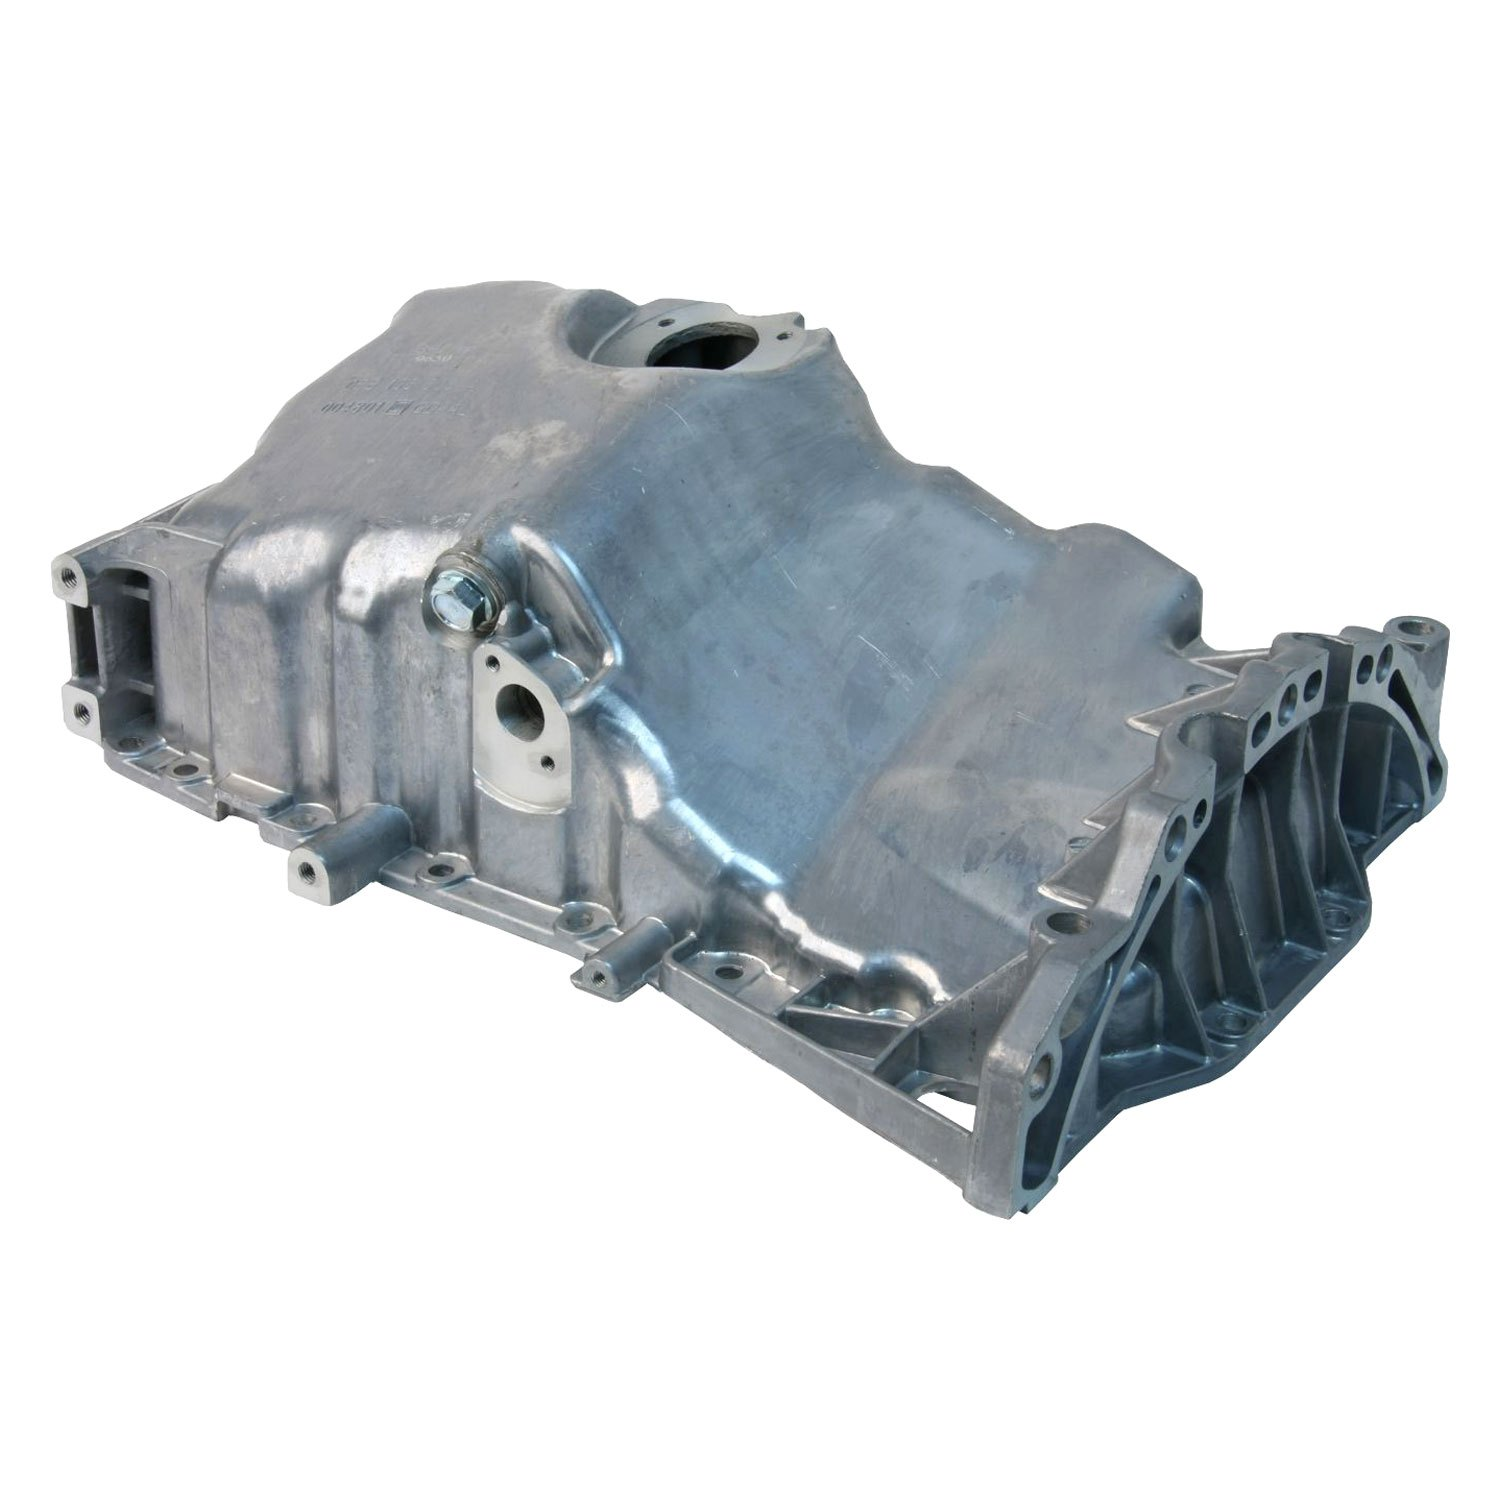 Audi A4 / A4 Quattro 2003 Engine Oil Pan